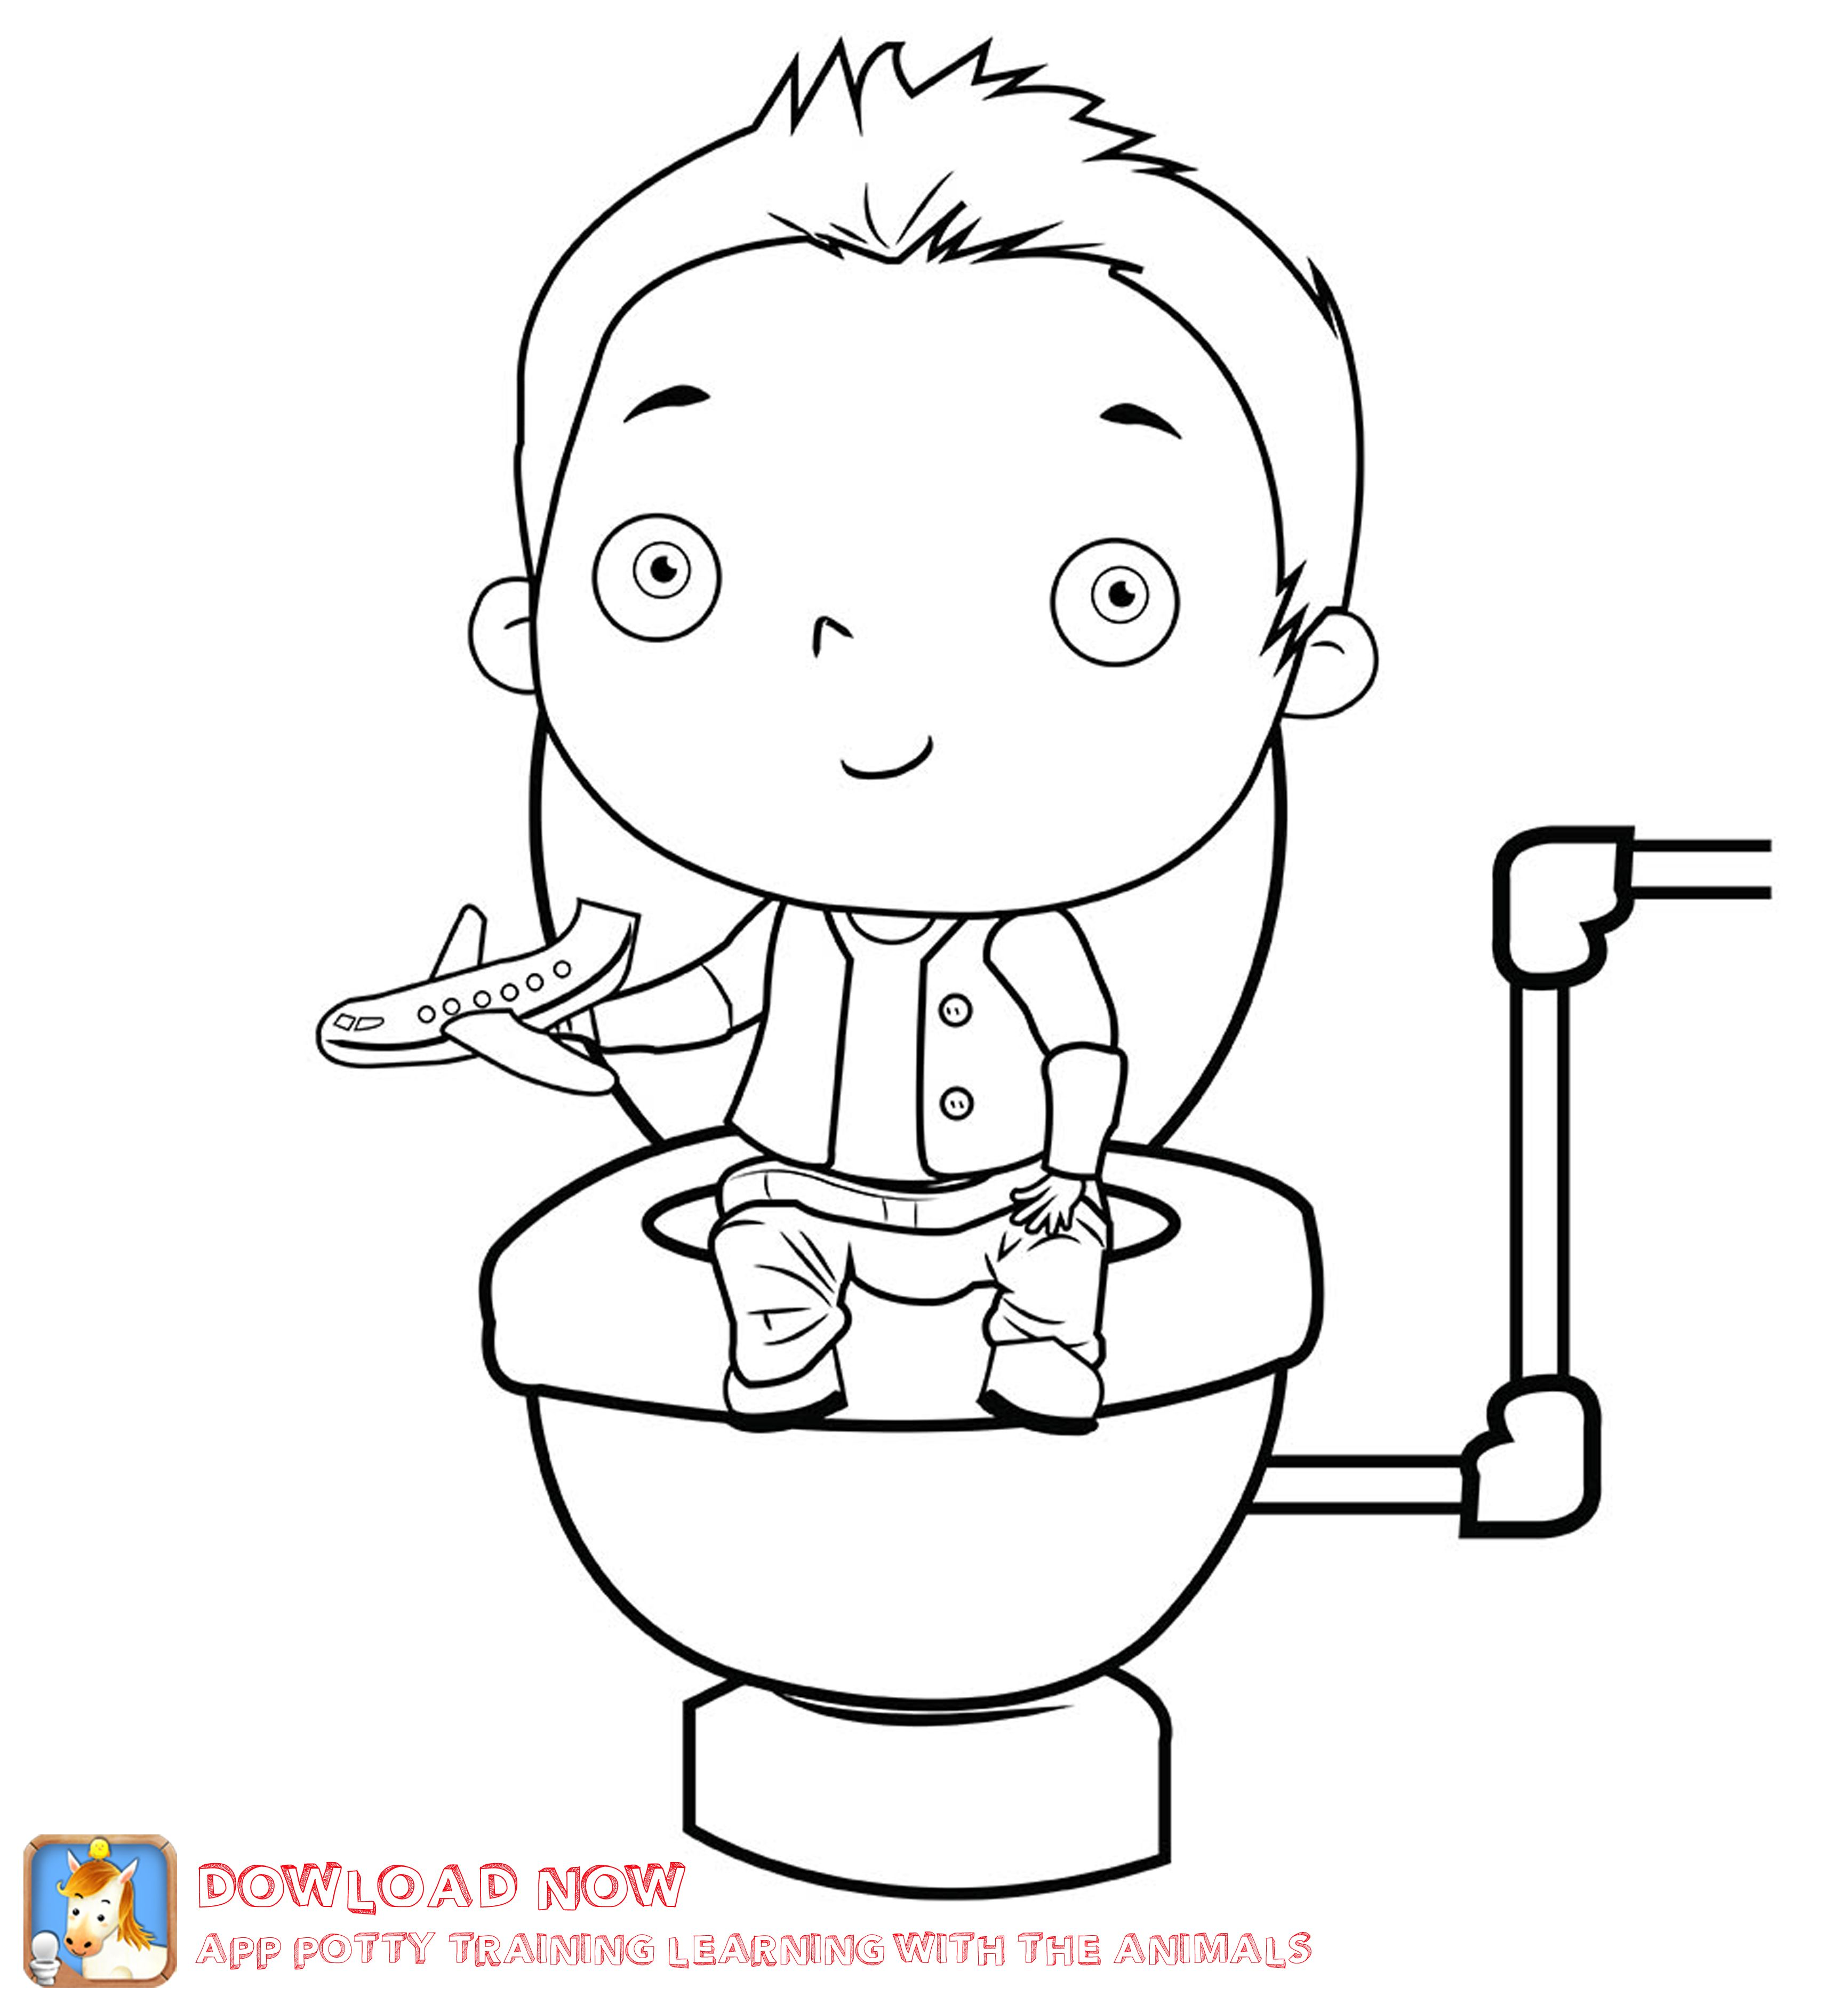 Pin by camila @1tucan on Potty training coloring pages